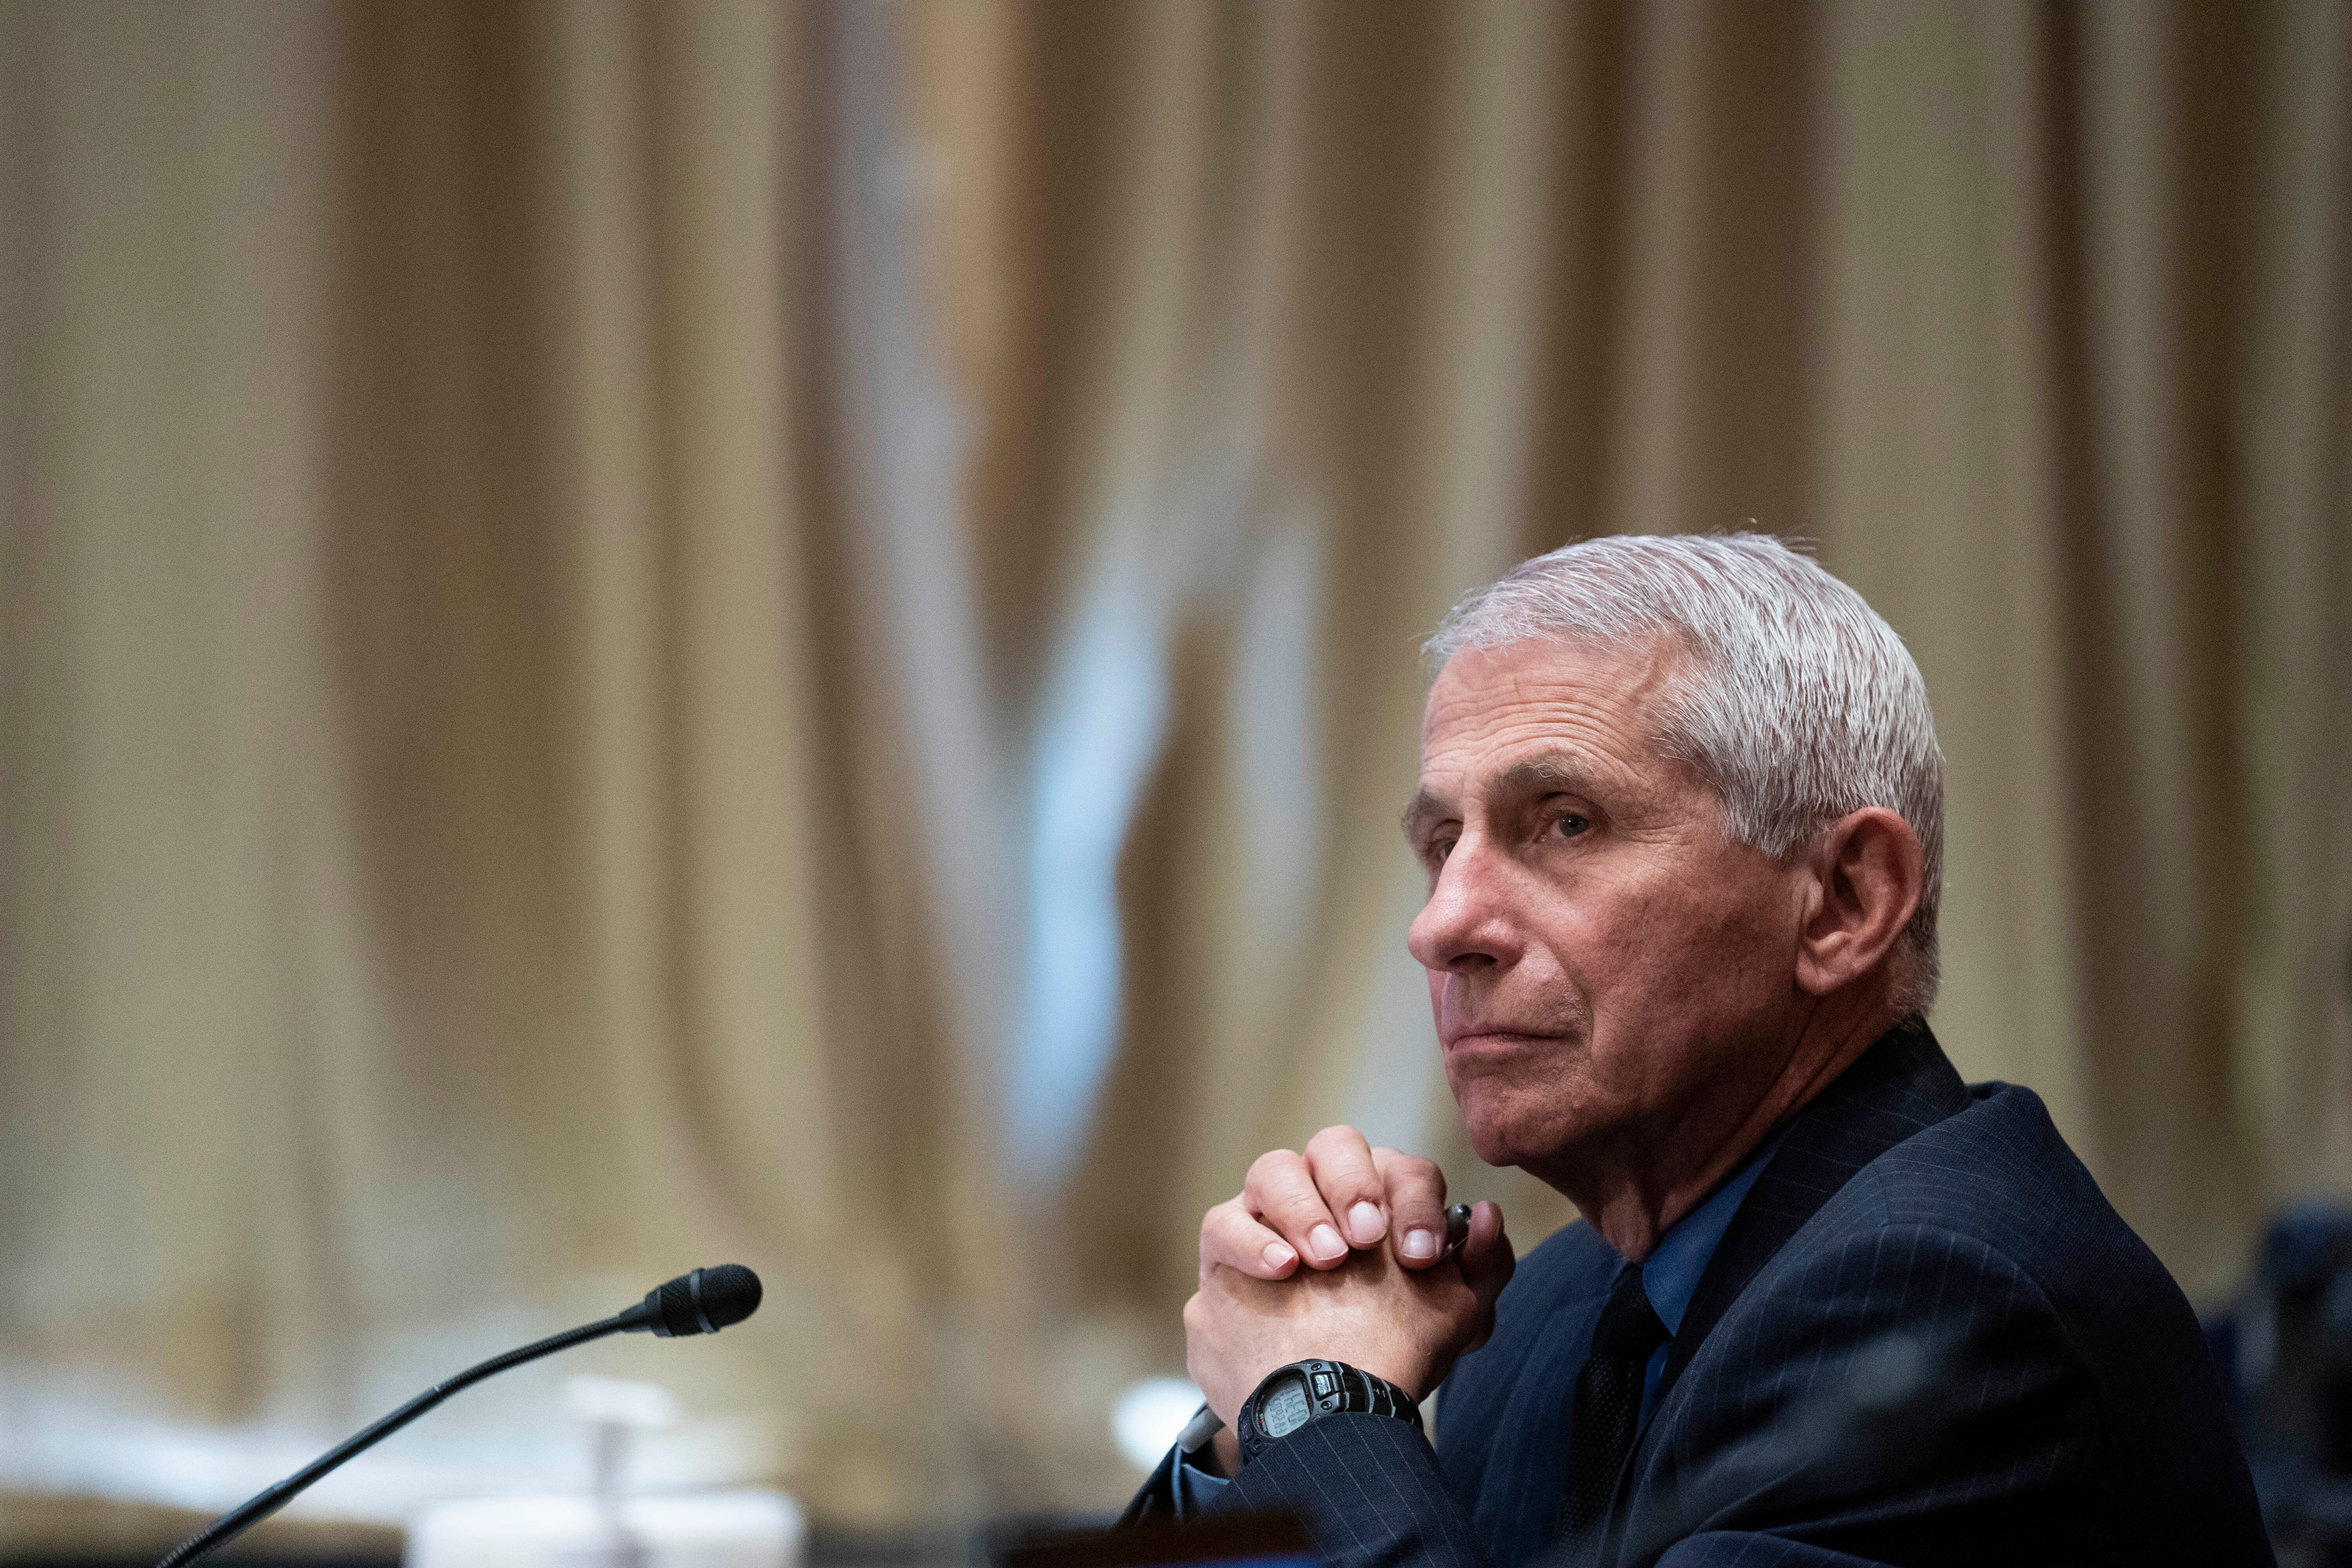 Dr. Anthony Fauci, director of the National Institute of Allergy and Infectious Diseases, listens during a Senate Appropriati